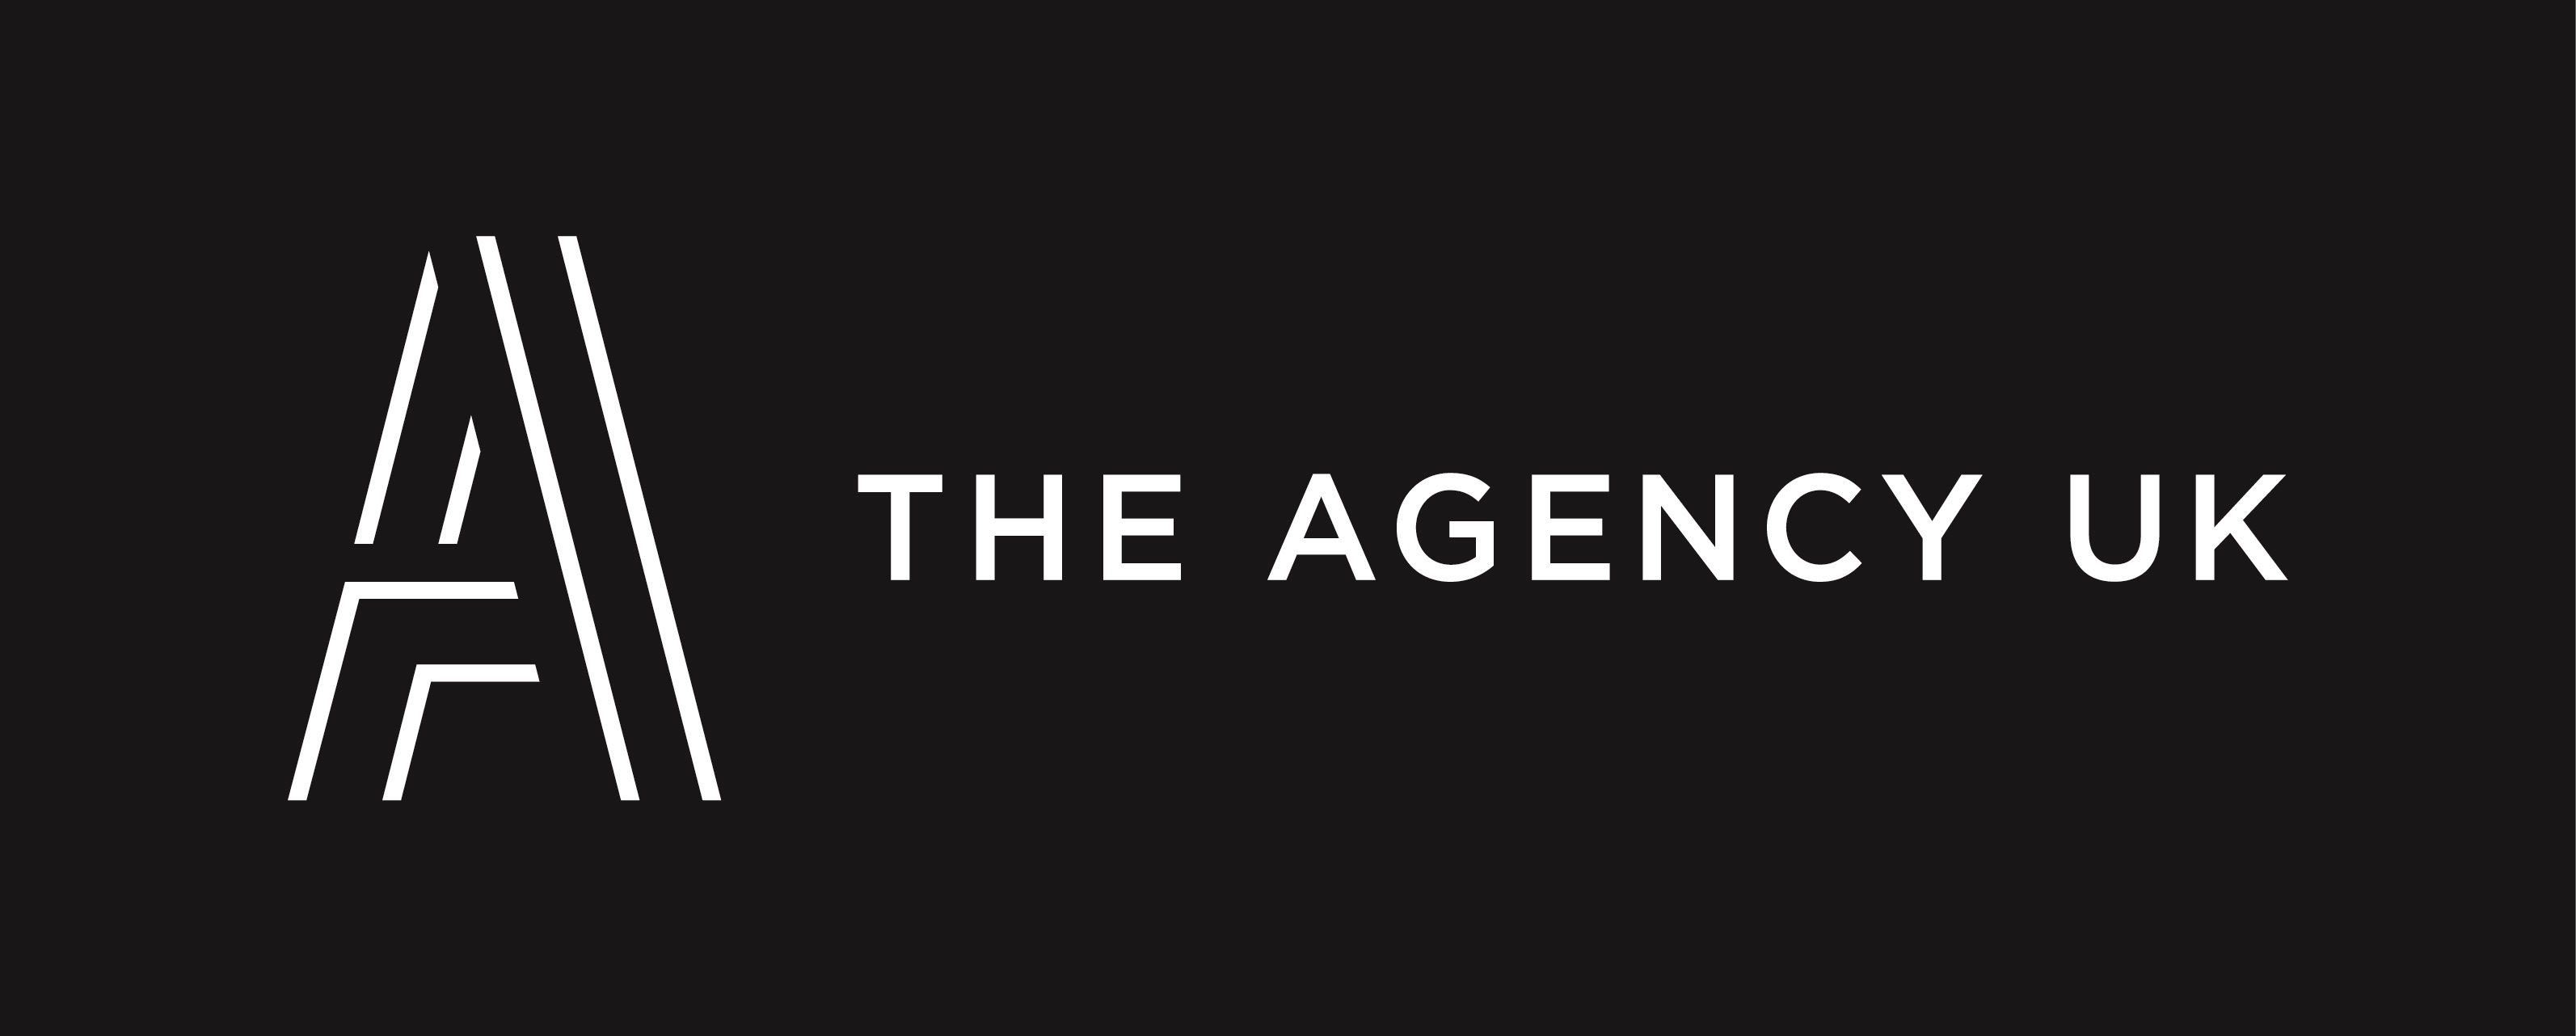 The Agency UK - Central Office